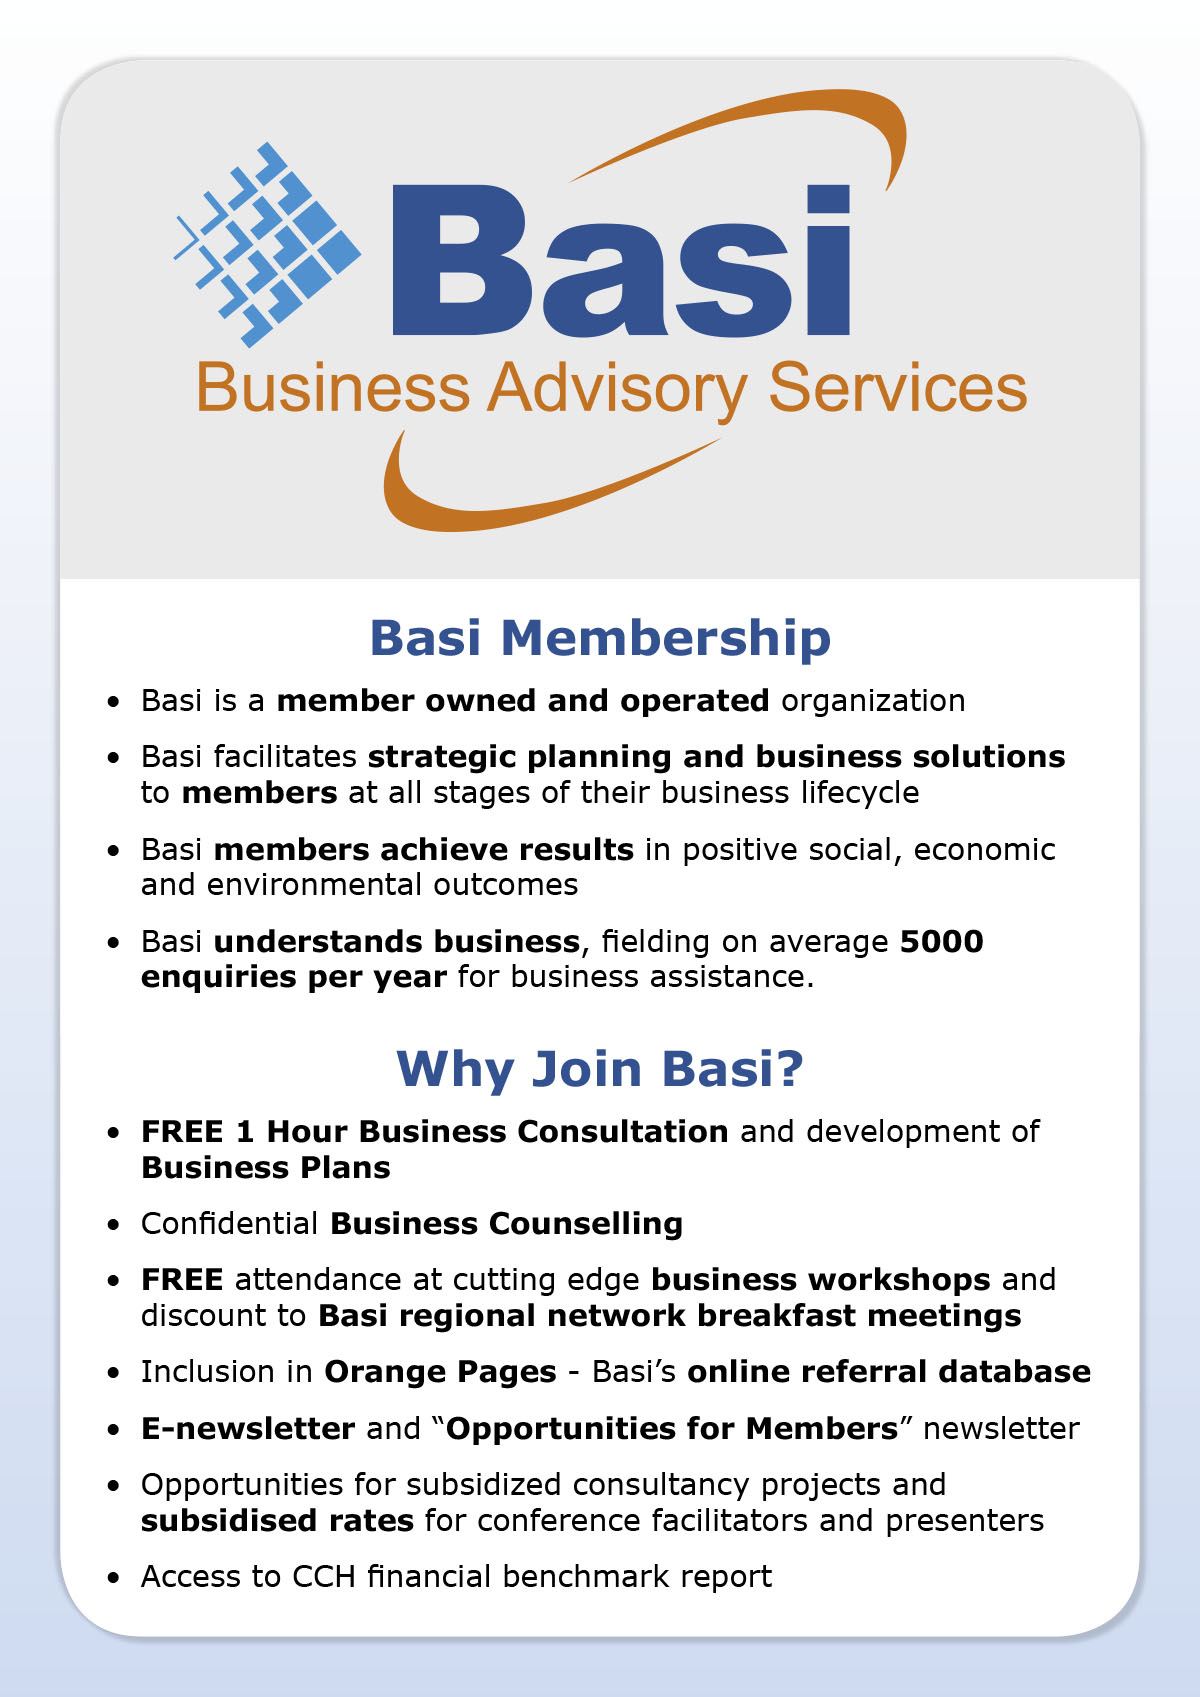 basi-business-services-blacktown-graphic-design-03